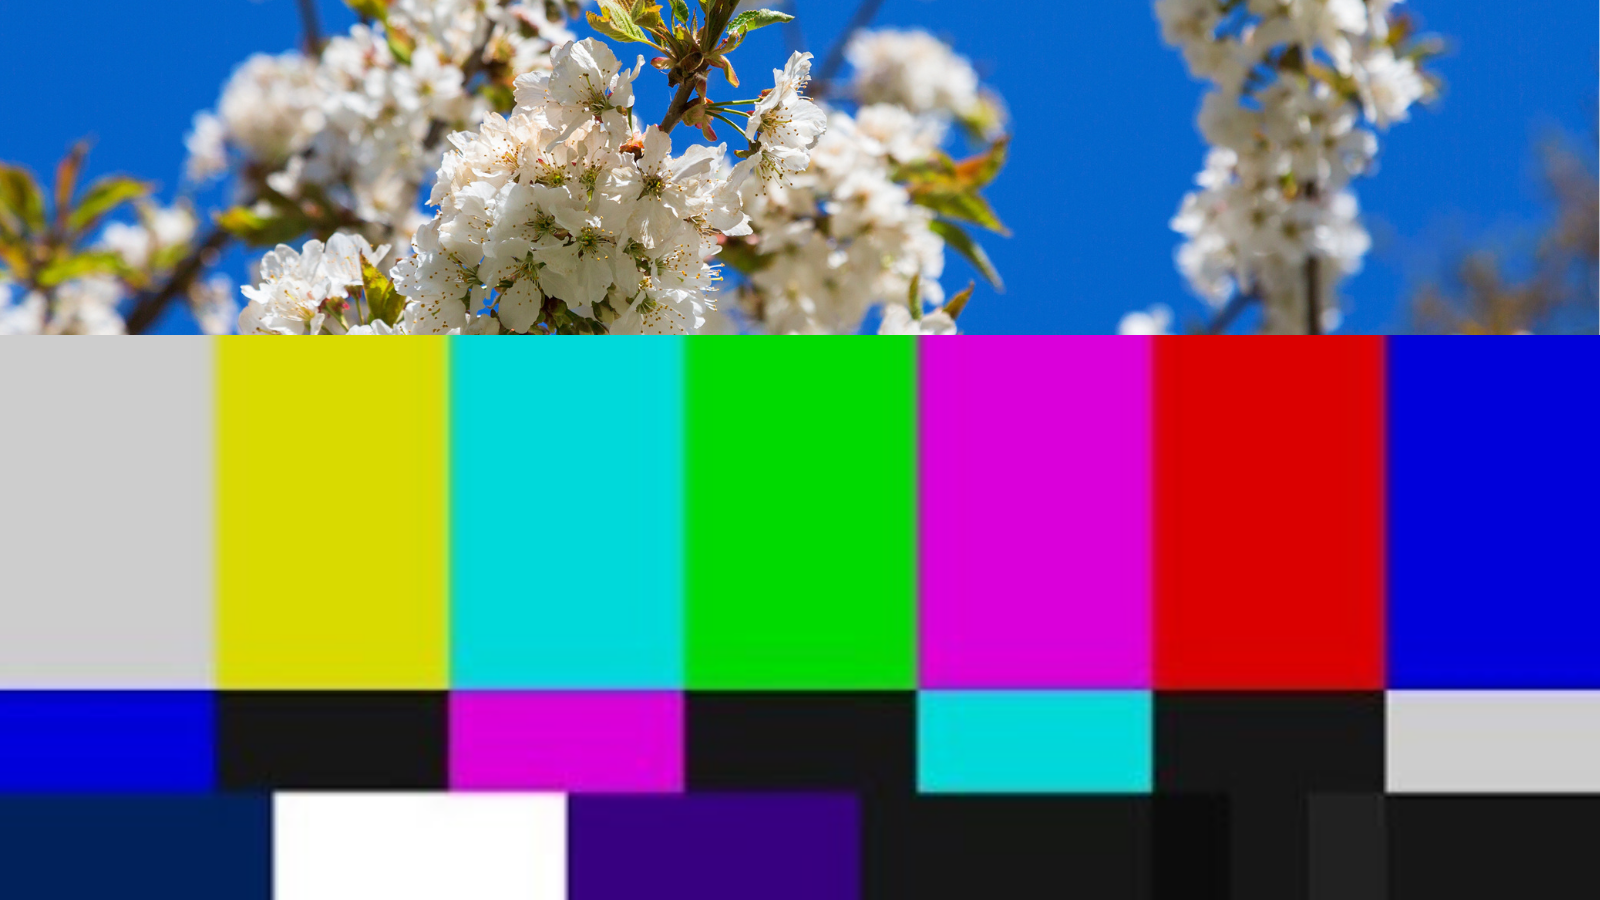 This collage image includes white flowers against a blue sky in the top 1/3, and a SMPTE color bars test pattern used to test television signals.